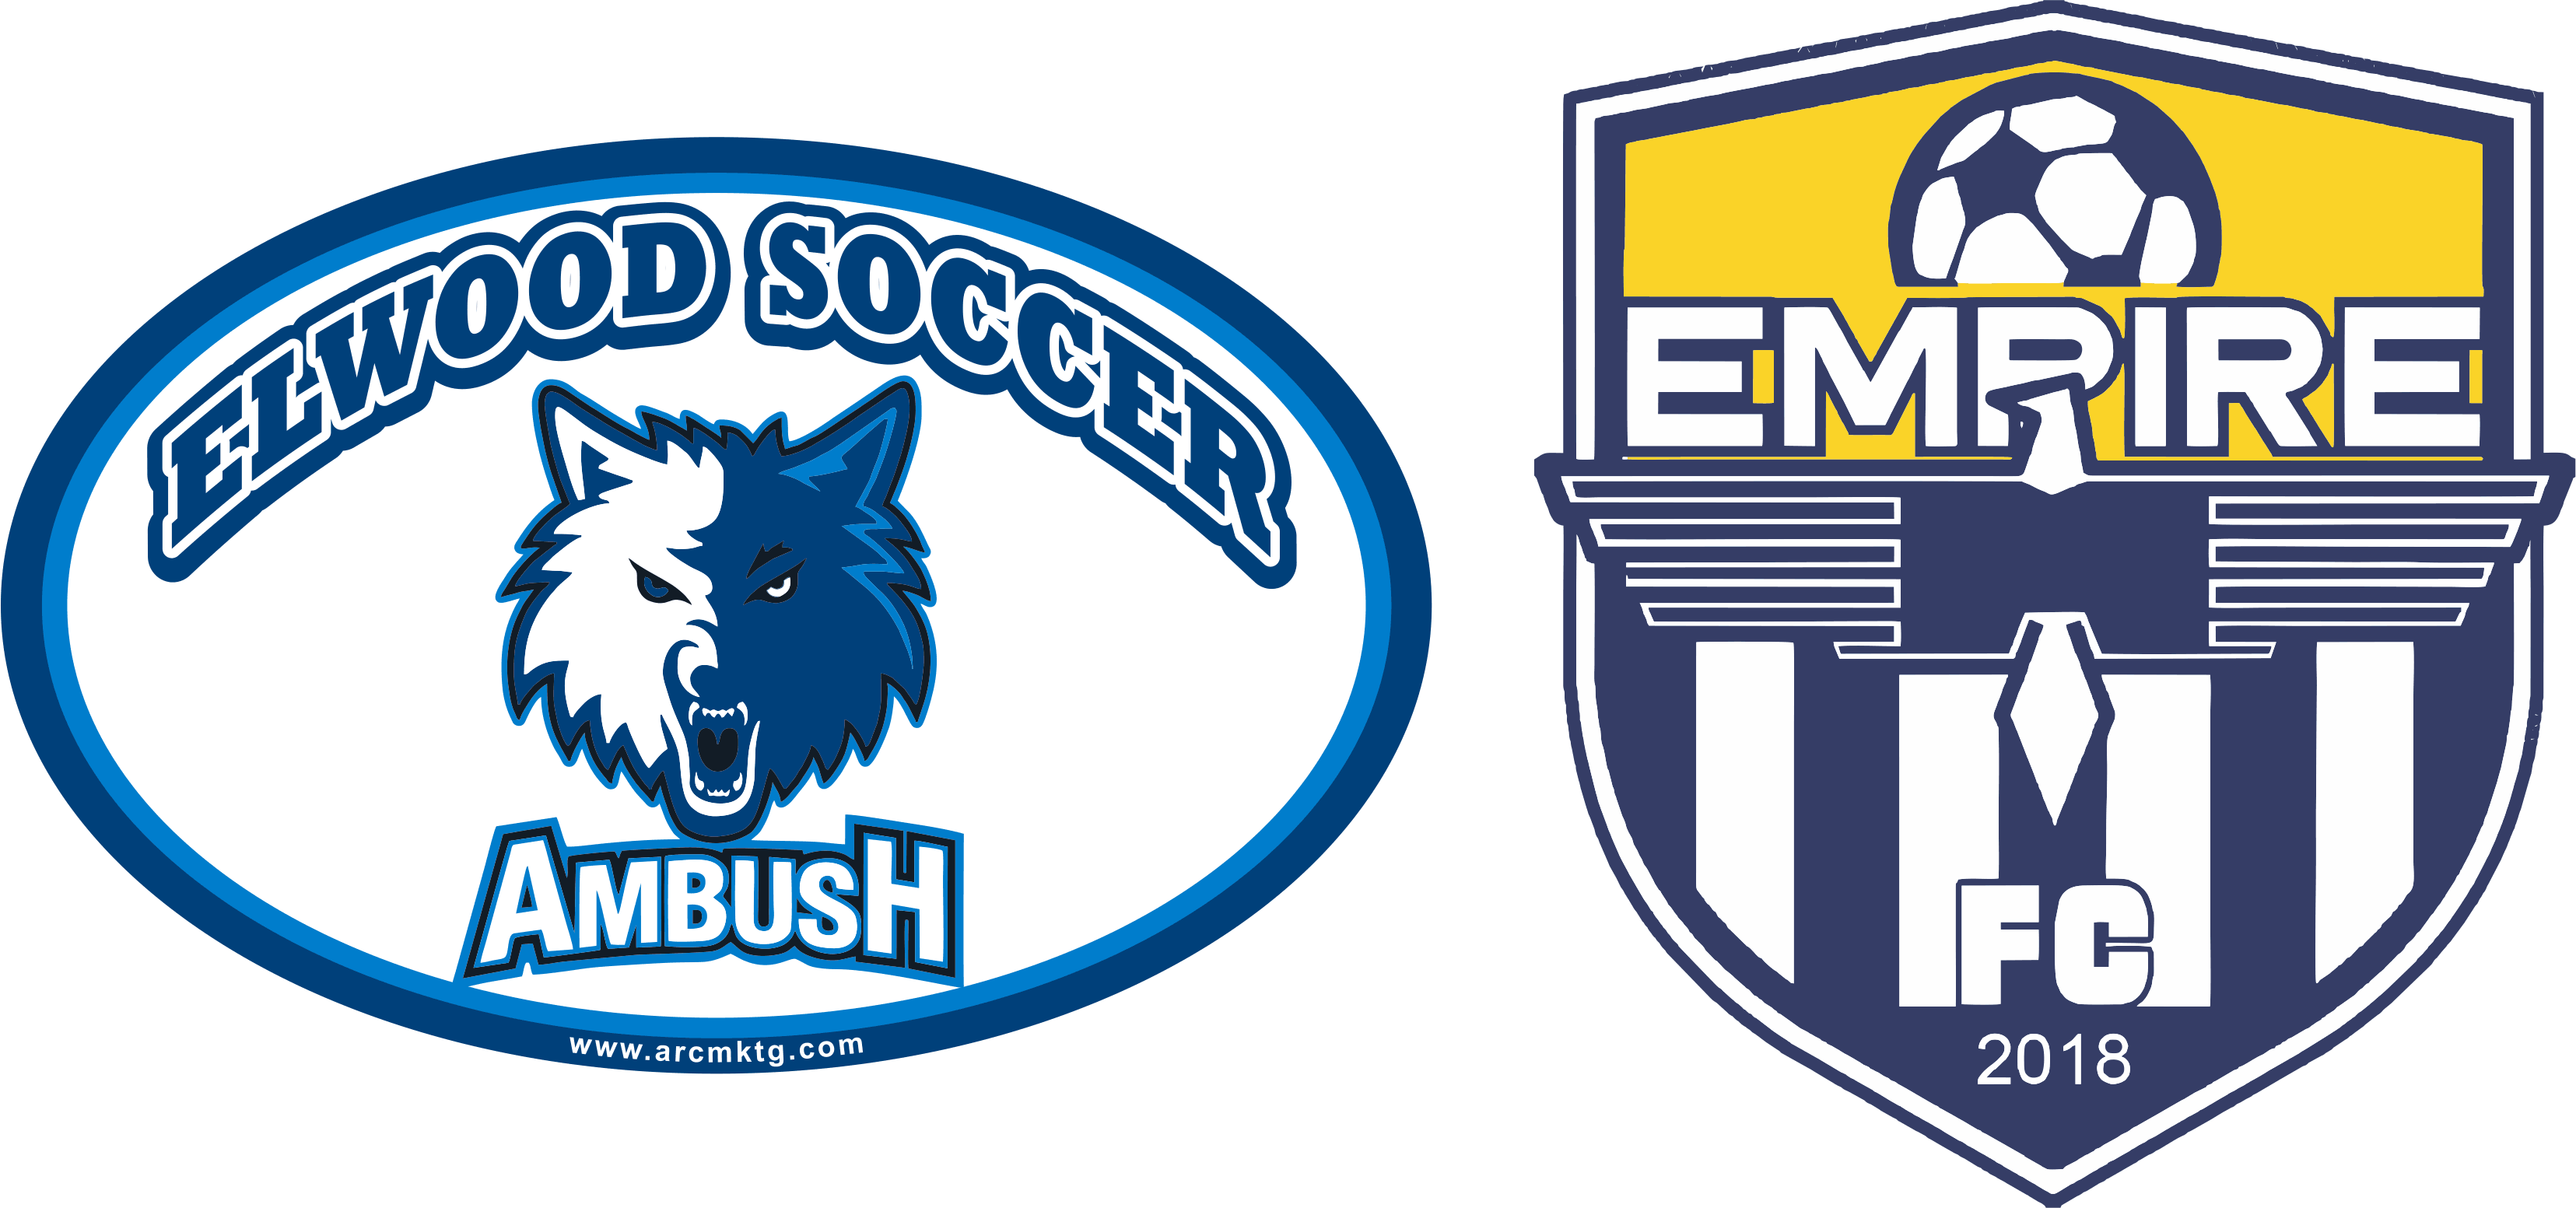 Fundraising Soccer League car magnets